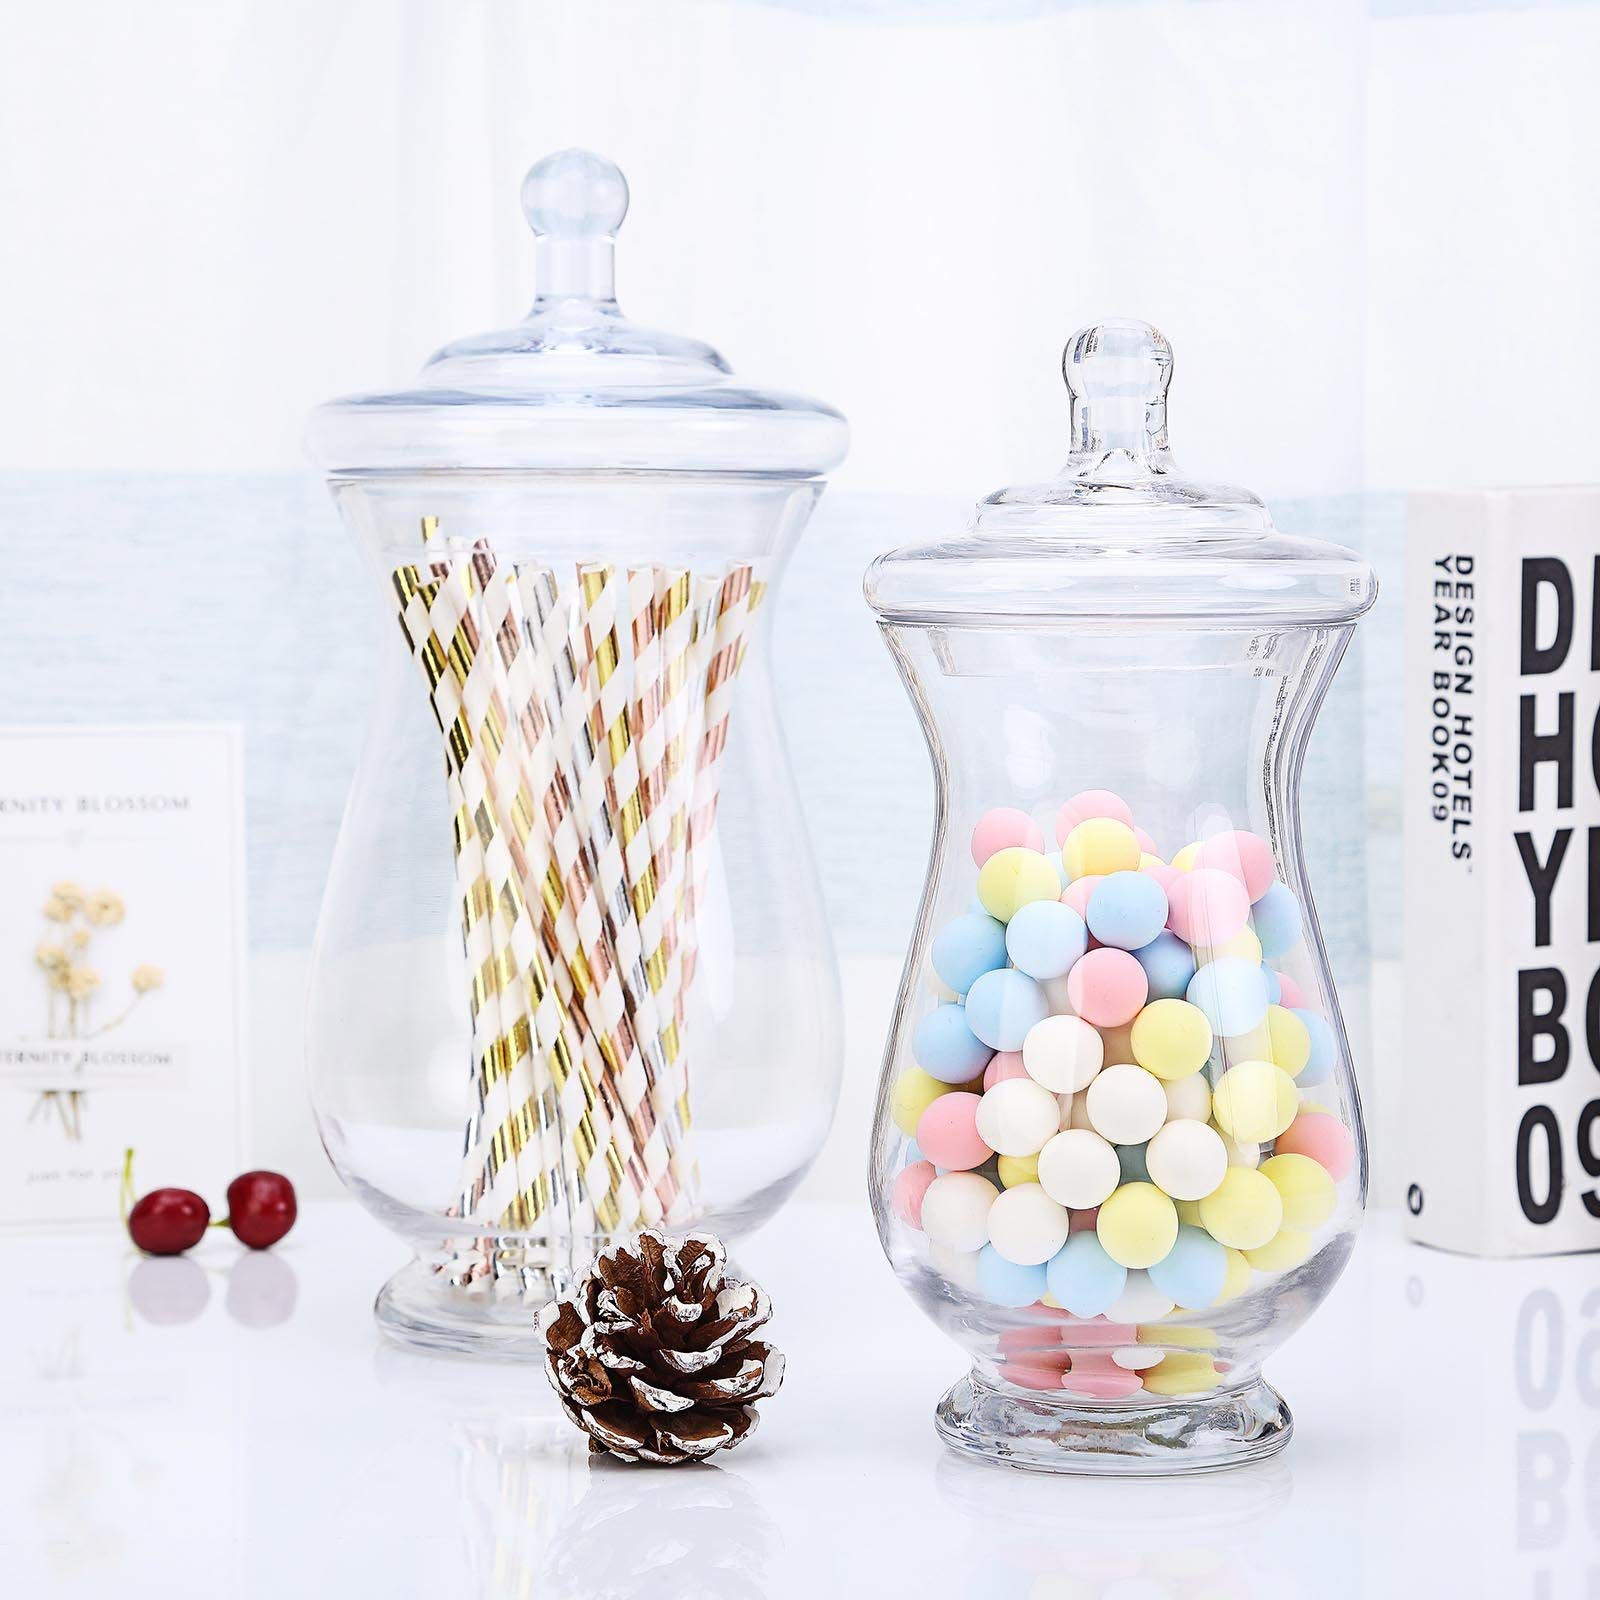 Efavormart 2 Pack | Clear Glass Apothecary Jars Candy Buffet Containers with Lids for Wedding Party Favor Decor - 10''/12'' by Efavormart.com